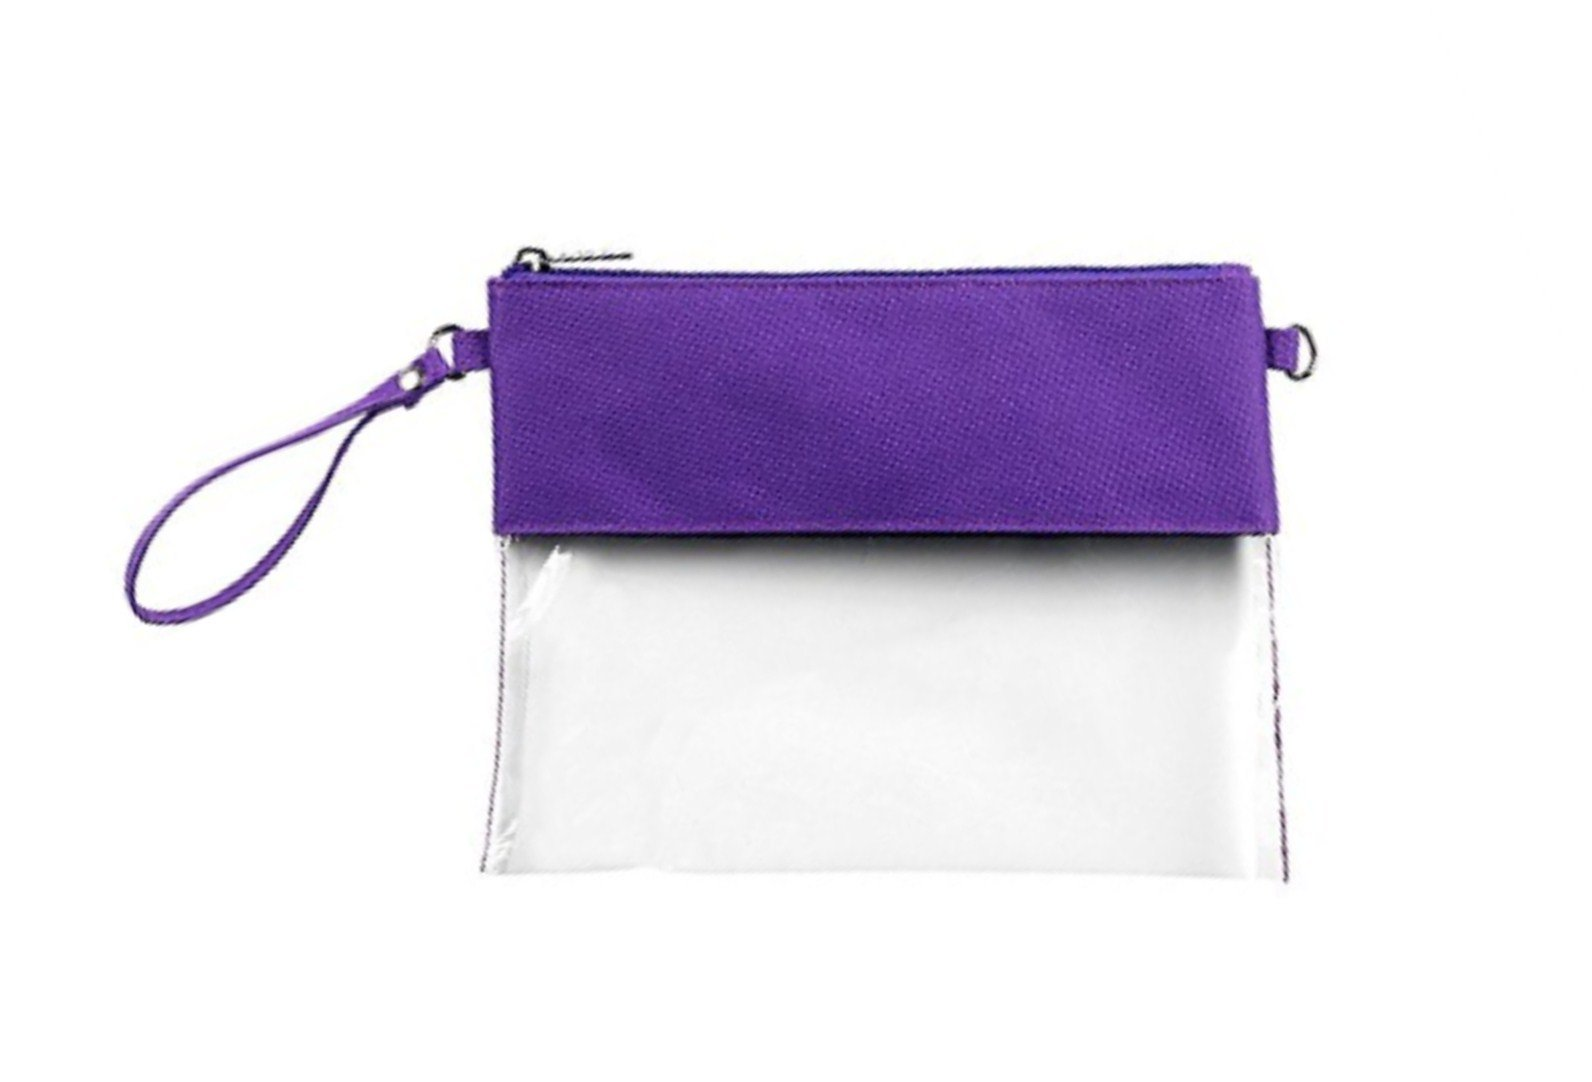 MONOBLANKS Clear Zip Pouch with Detachable Crossbody Adjustable Strap and Wristlet (Purple) by MONOBLANKS (Image #1)